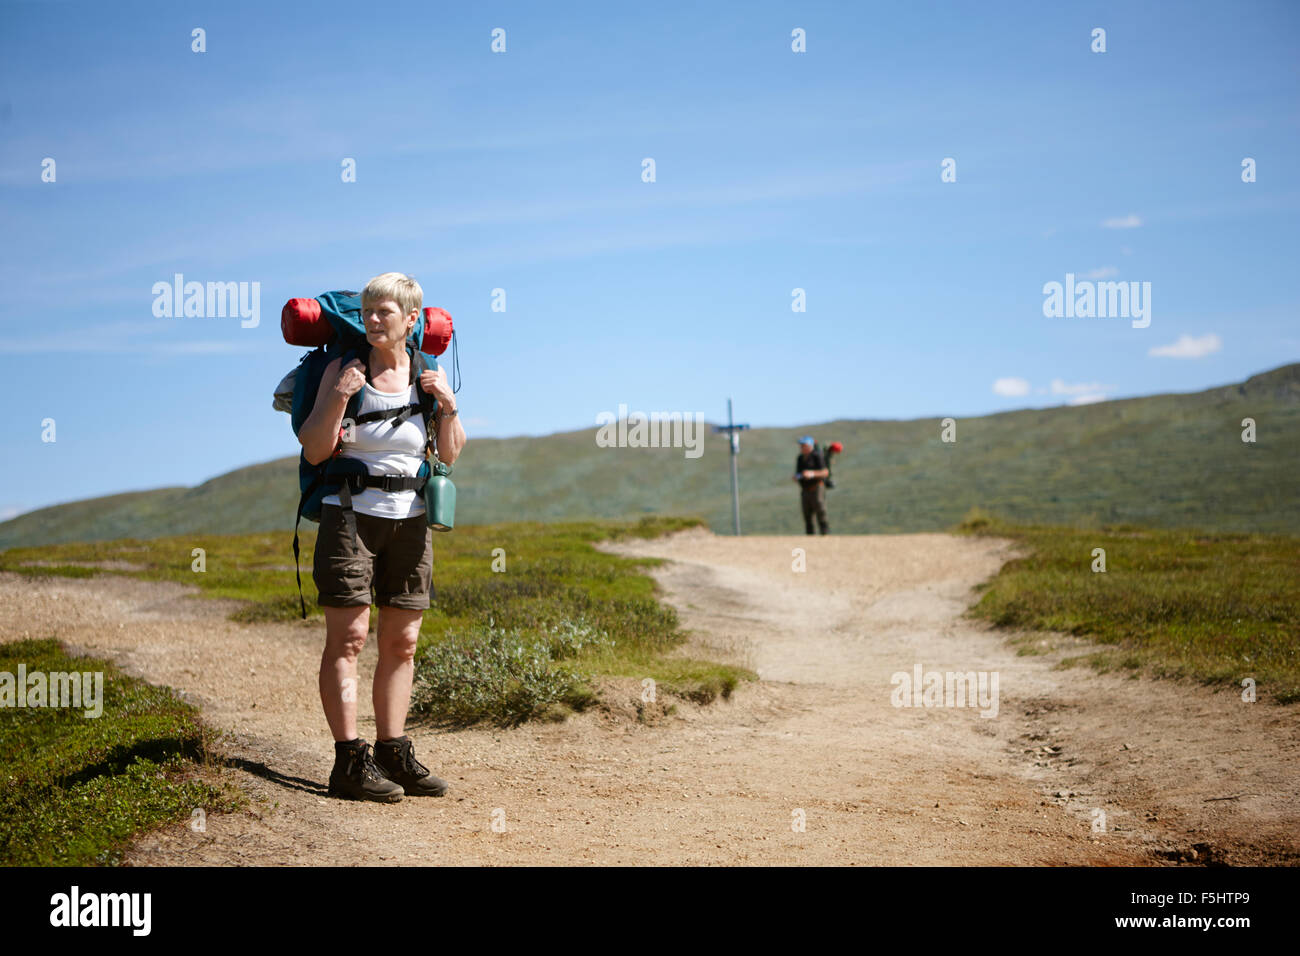 Sweden, Jamtland, Two hikers on footpath - Stock Image